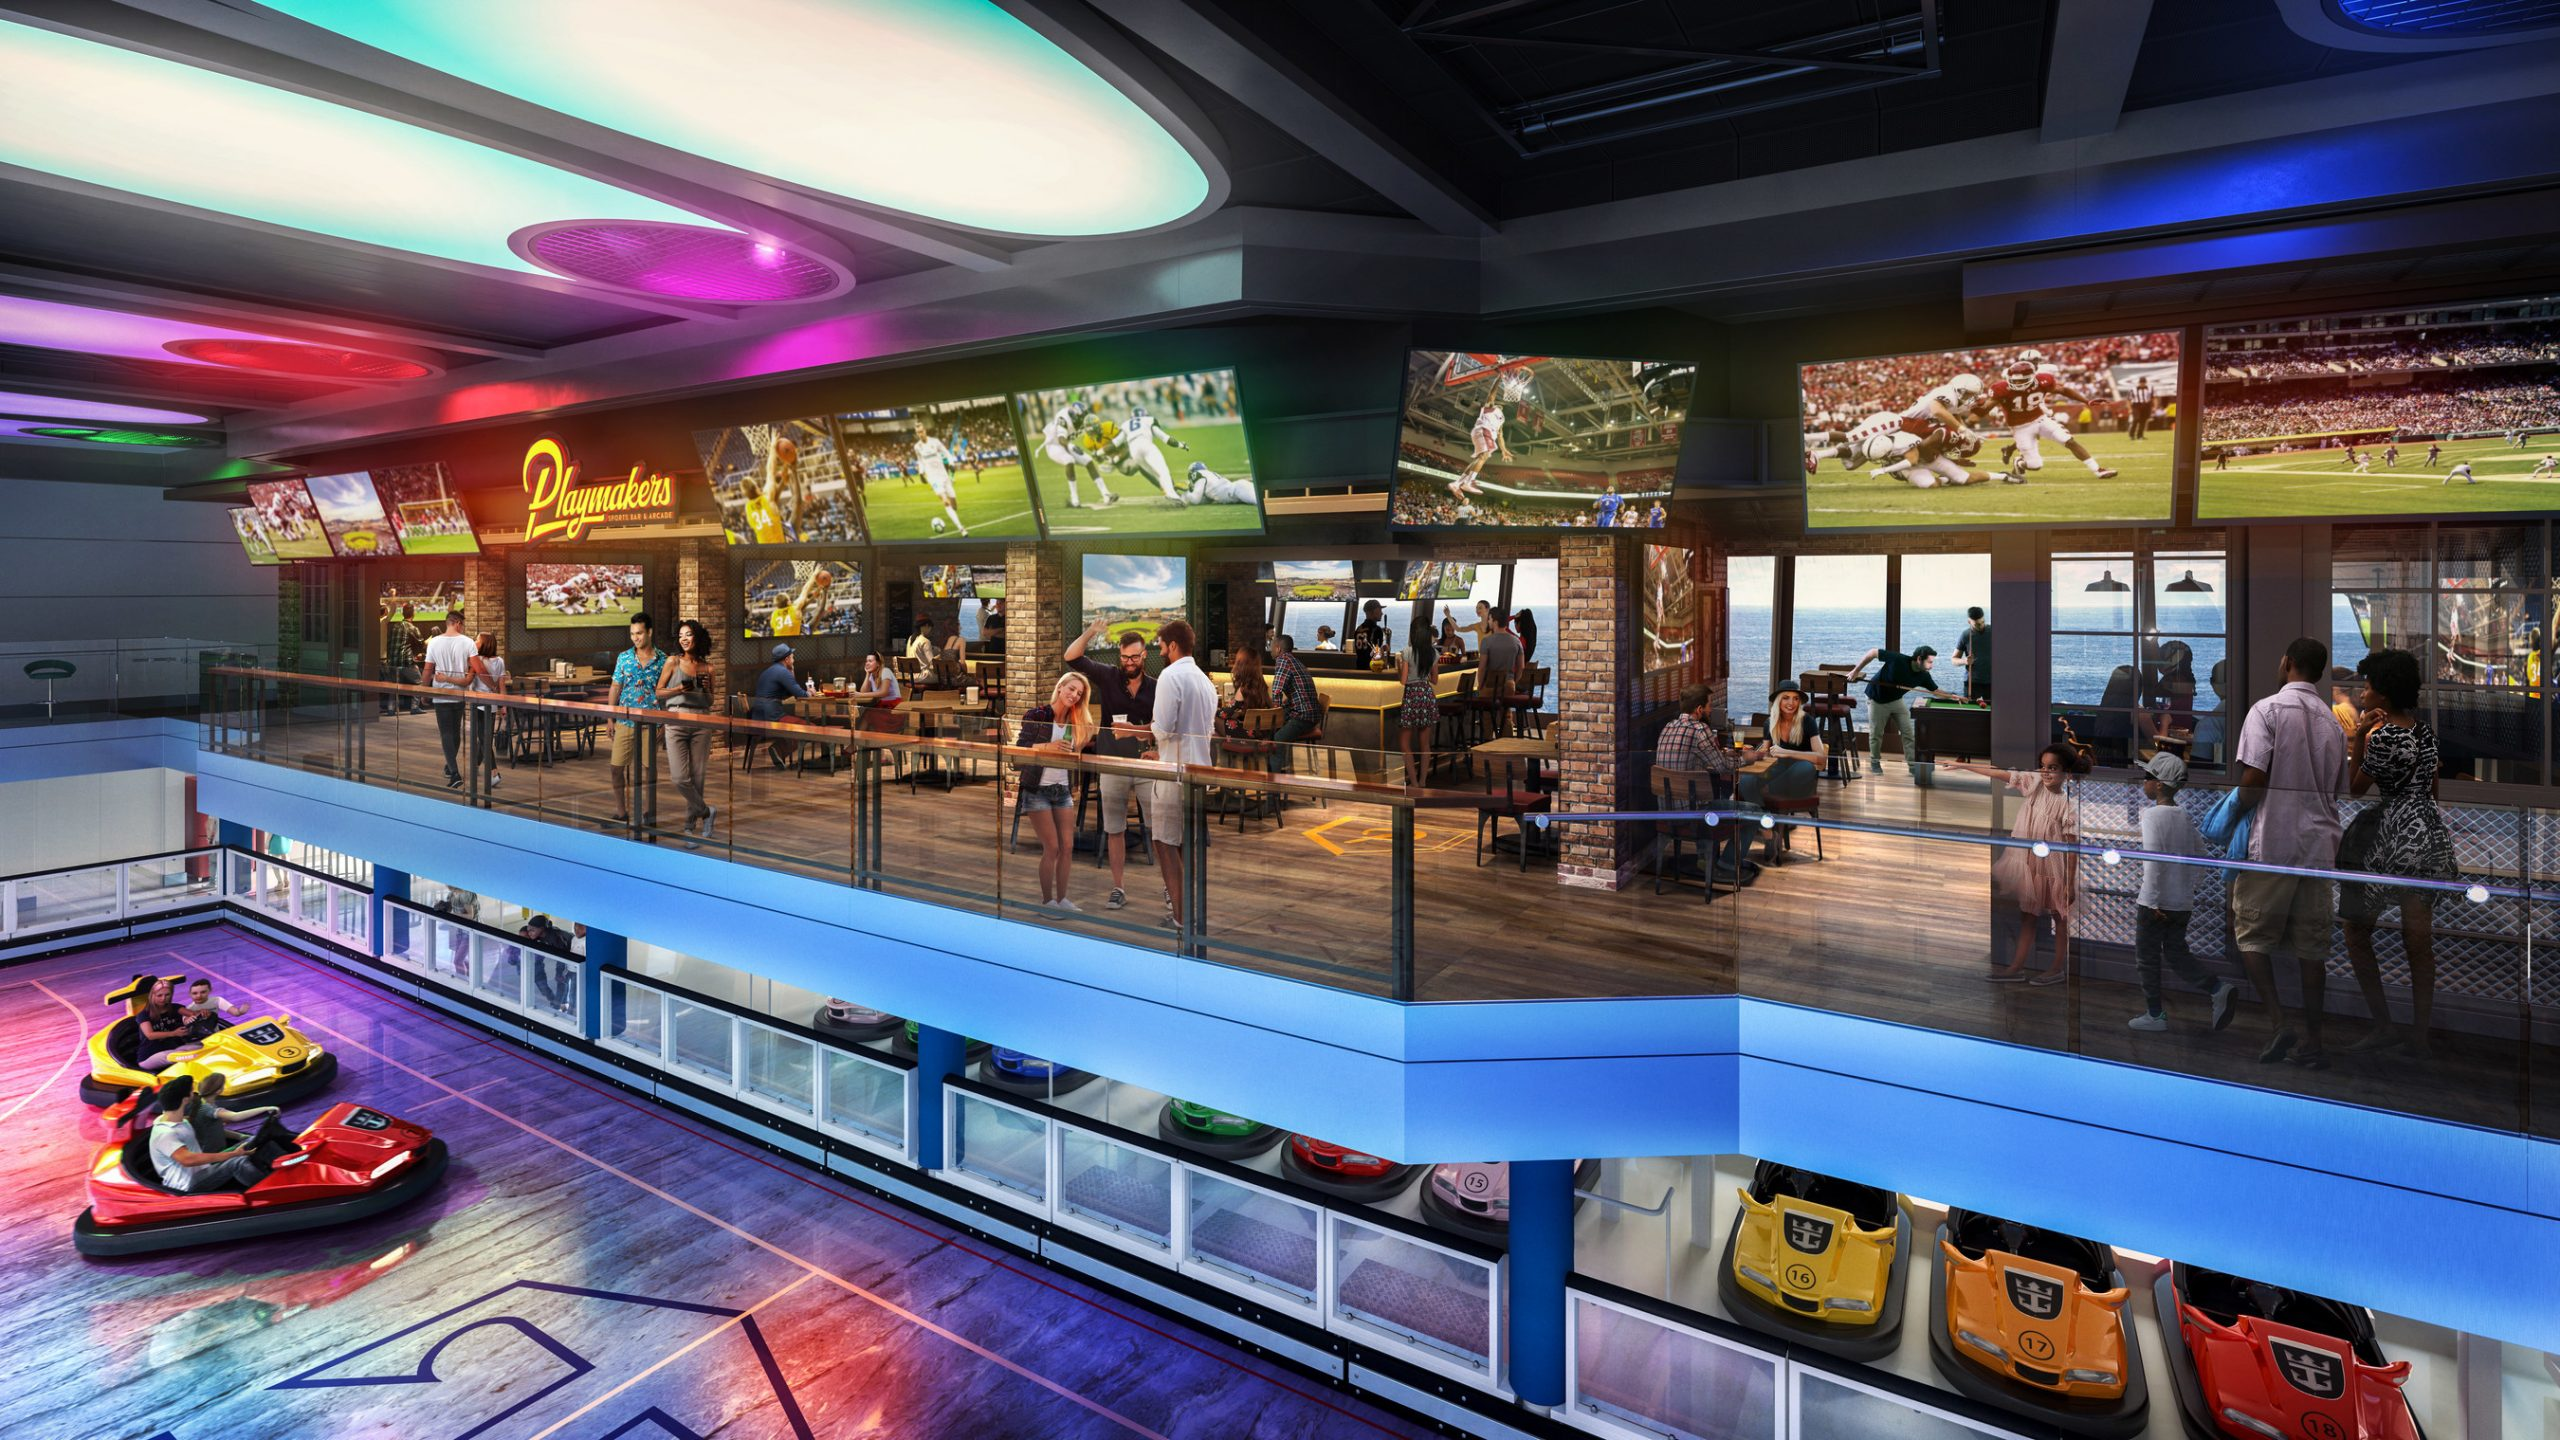 Odyssey of the Seas will combine the best of Quantum Class with new Royal Caribbean favorite Playmakers Sports Bar & Arcade, now boasting a prime location within SeaPlex. With TVs at every angle to cheer on the home team and club-level views of the competition below, sports fans won't miss a beat. Odyssey debuts in Haifa, Israel in May 2021 and then heads to Fort Lauderdale, Florida in November. (Royal Caribbean International)